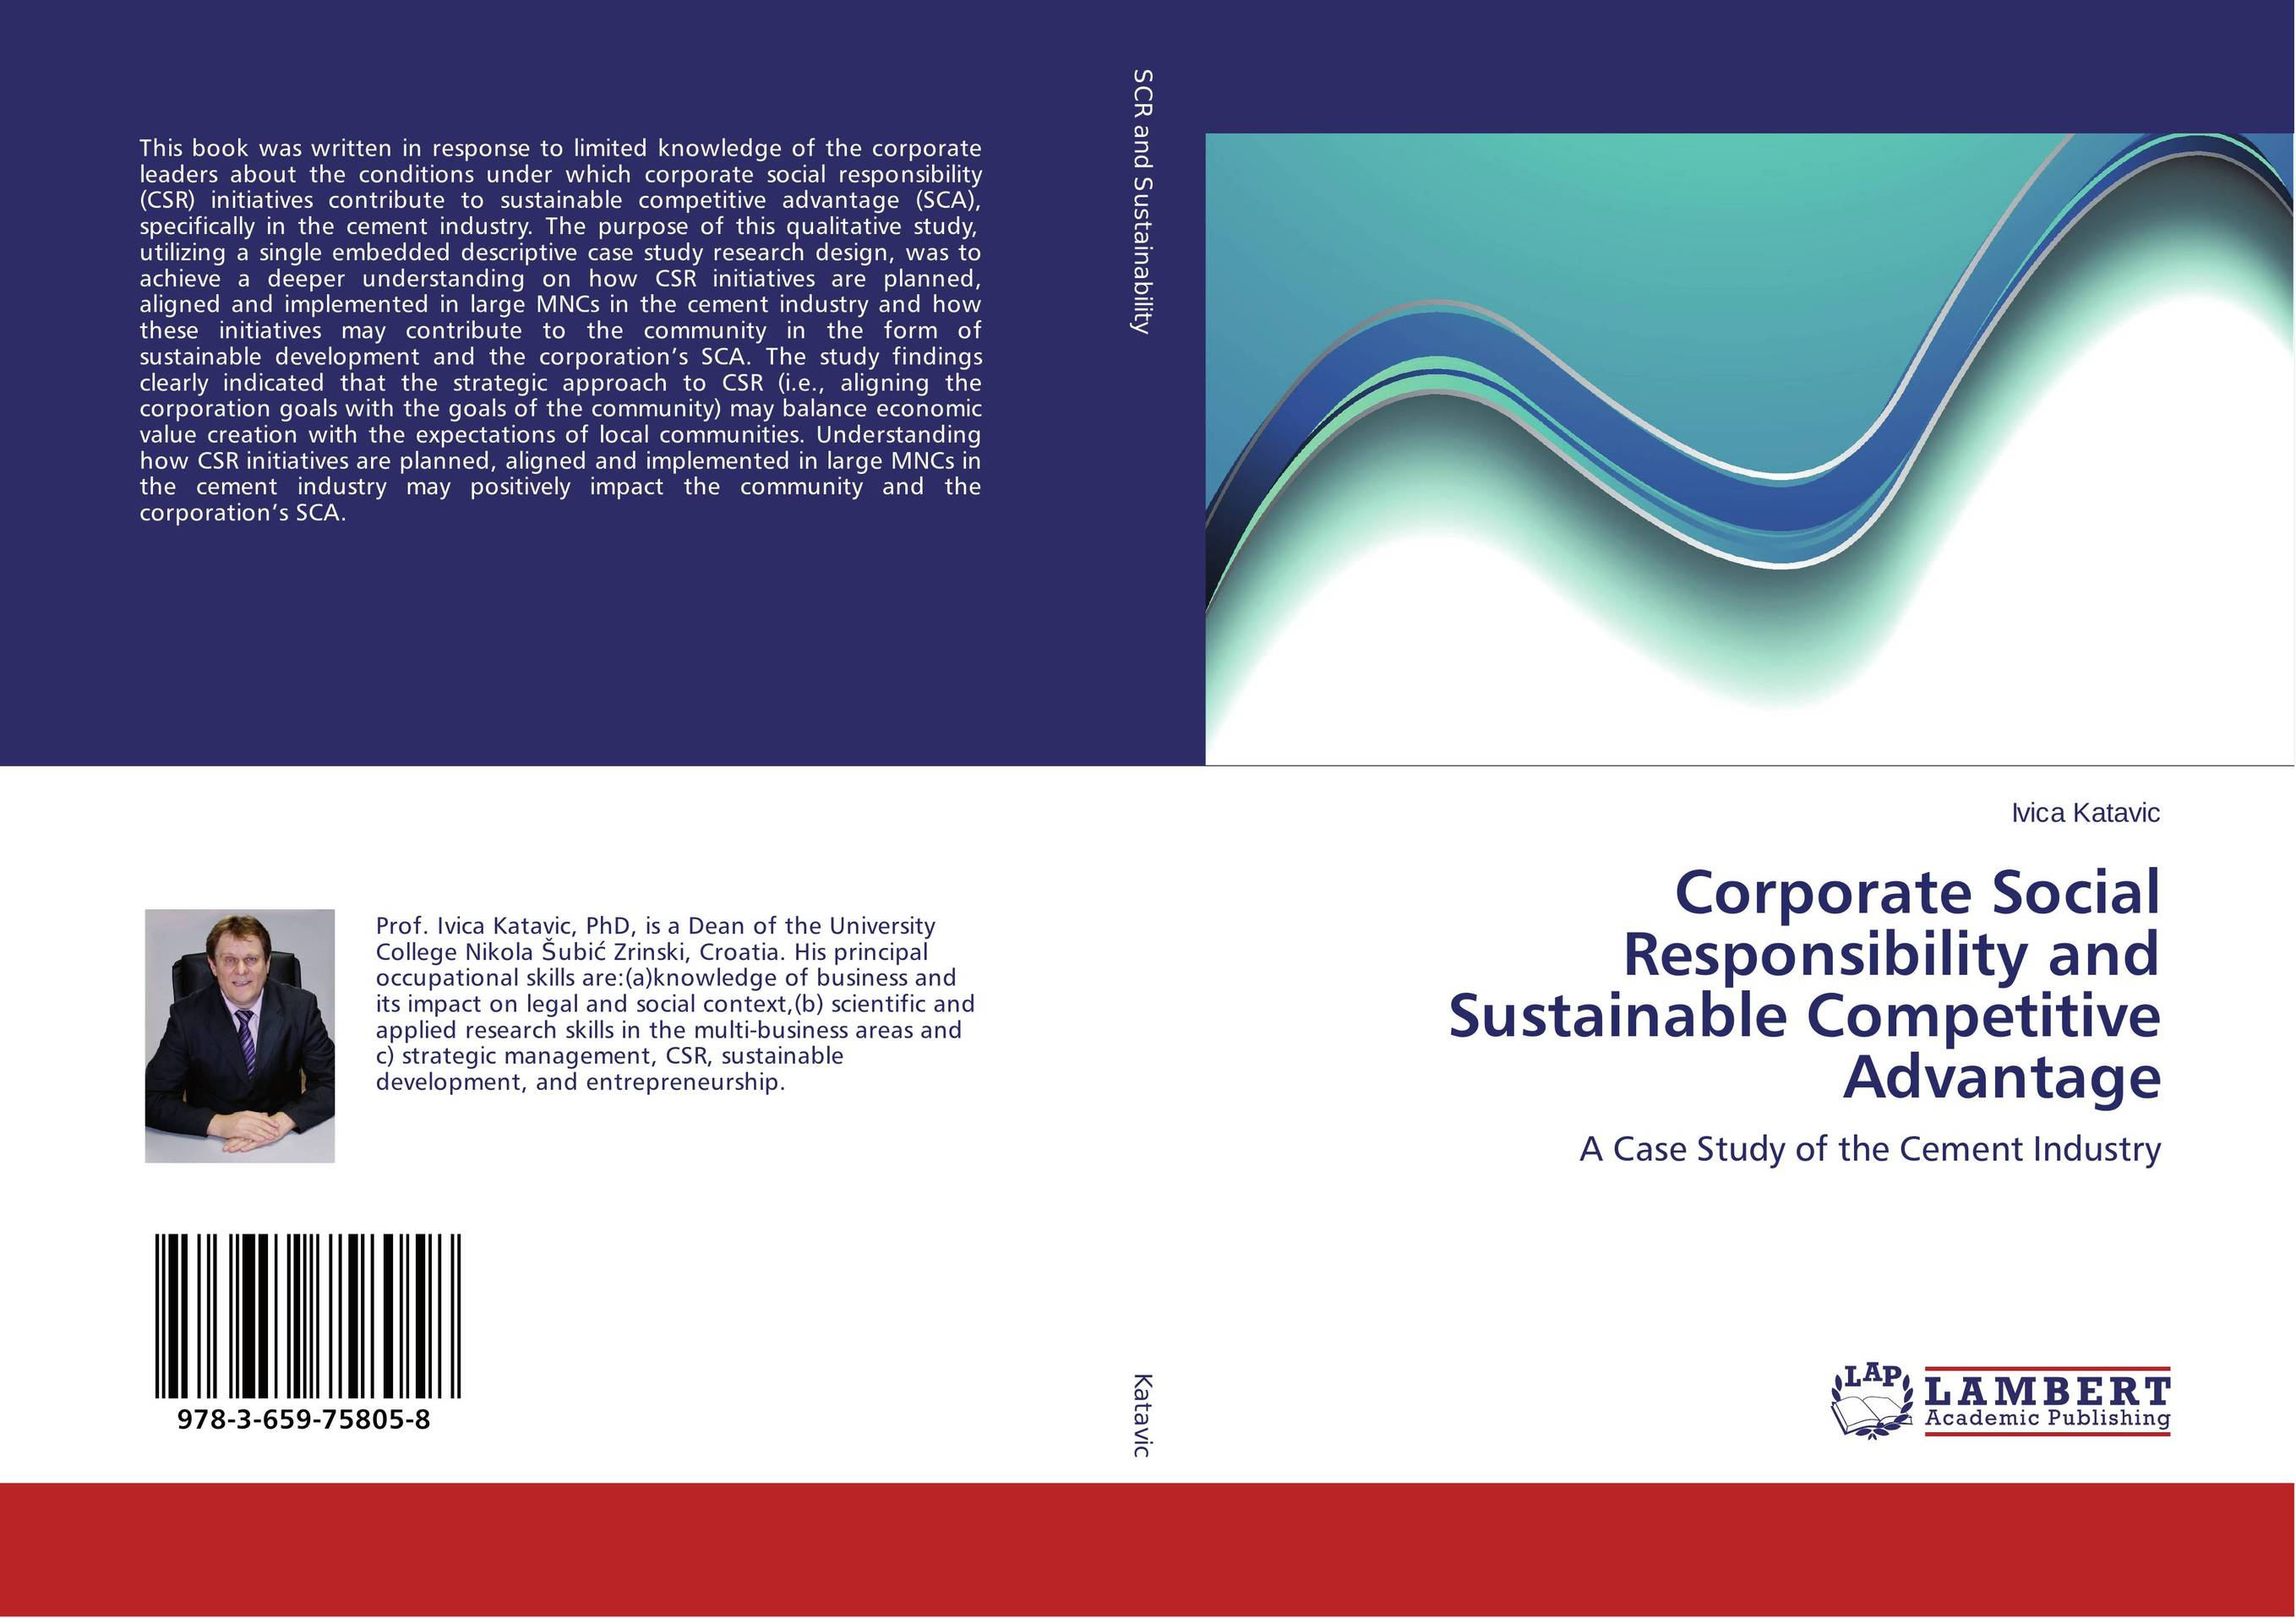 Corporate Social Responsibility and Sustainable Competitive Advantage corporate social responsibility in small medium and large industries